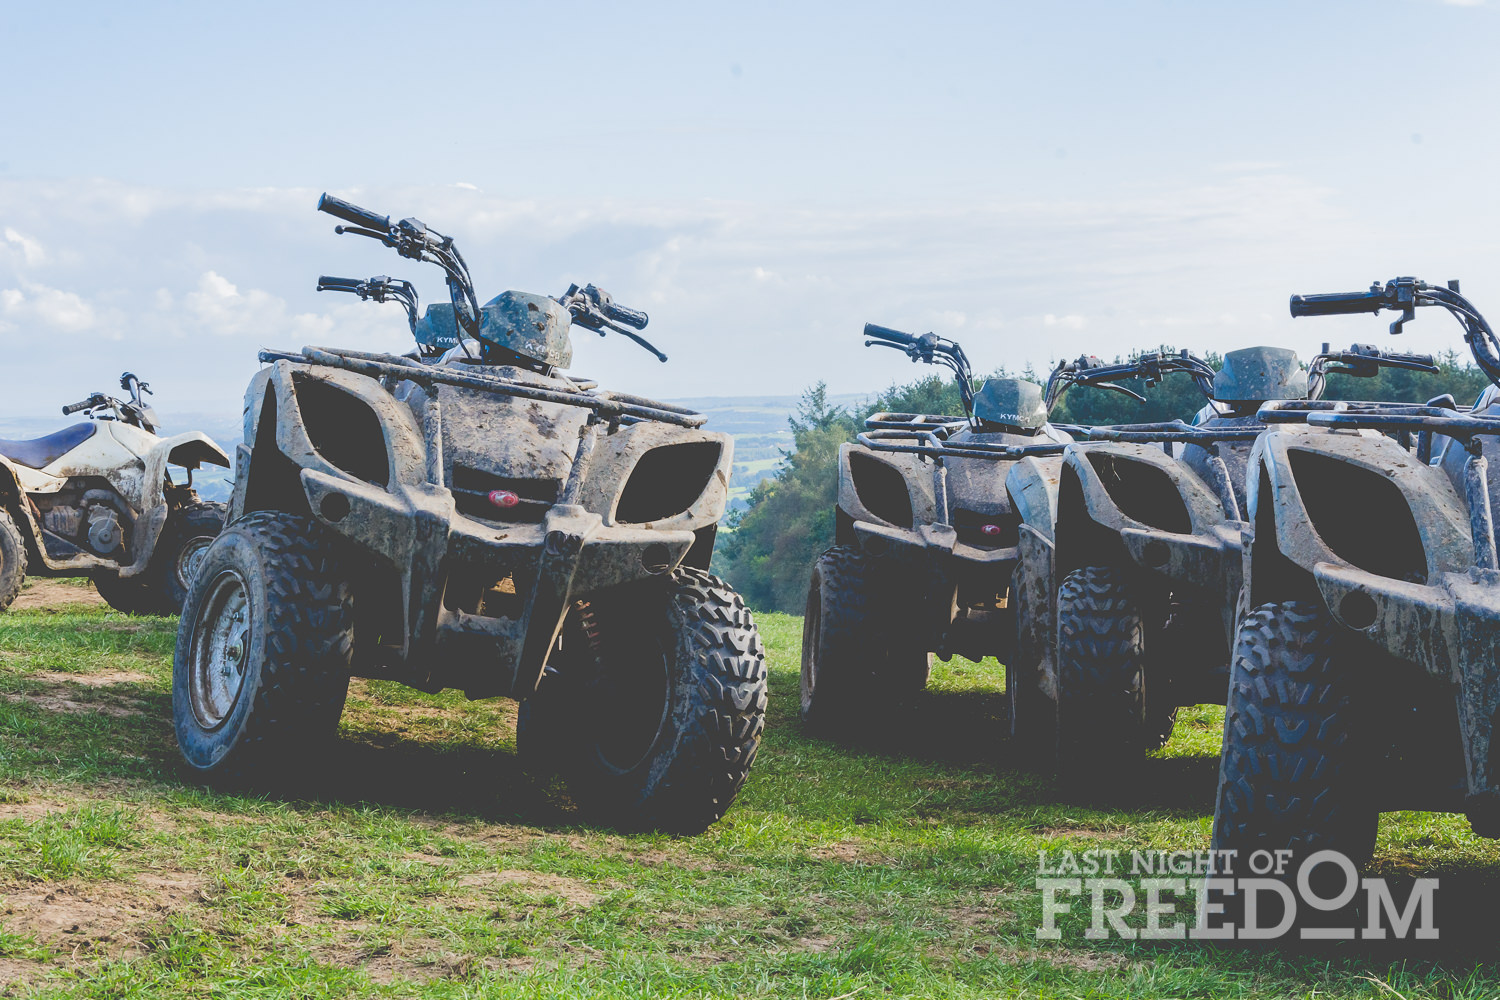 Some quad bikes lined up on a grassy hill